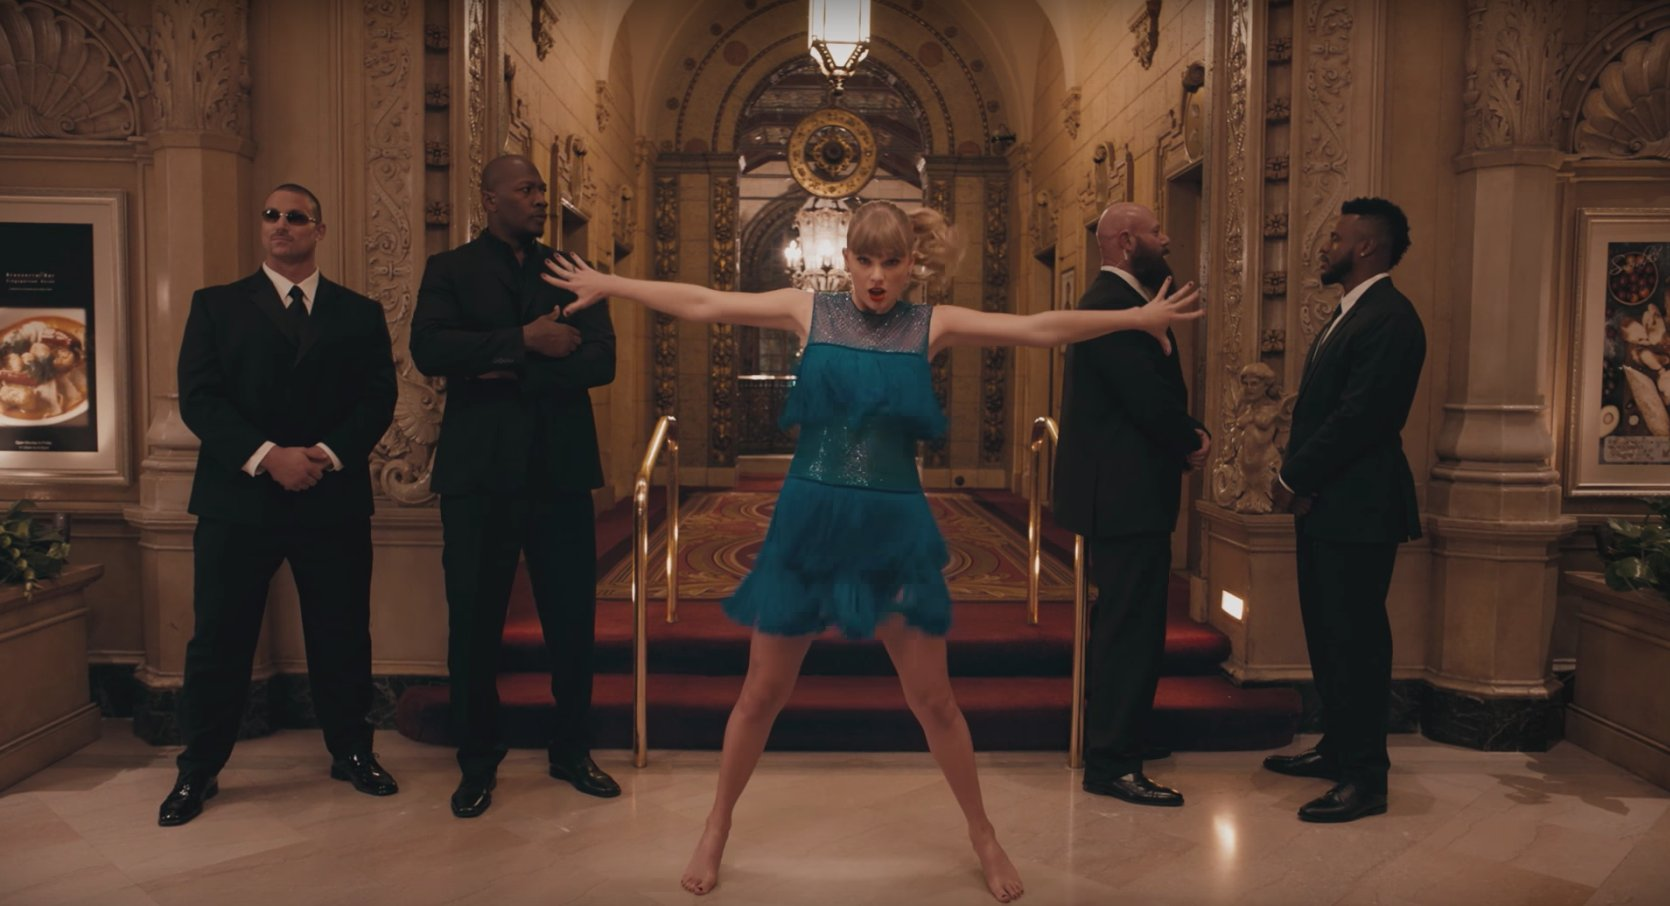 Watch Taylor Swift dance in hotels, ballrooms and subways in the new video for 'Delicate.' https://t.co/RUwMSh3ye5 https://t.co/ekPy9bnrIw